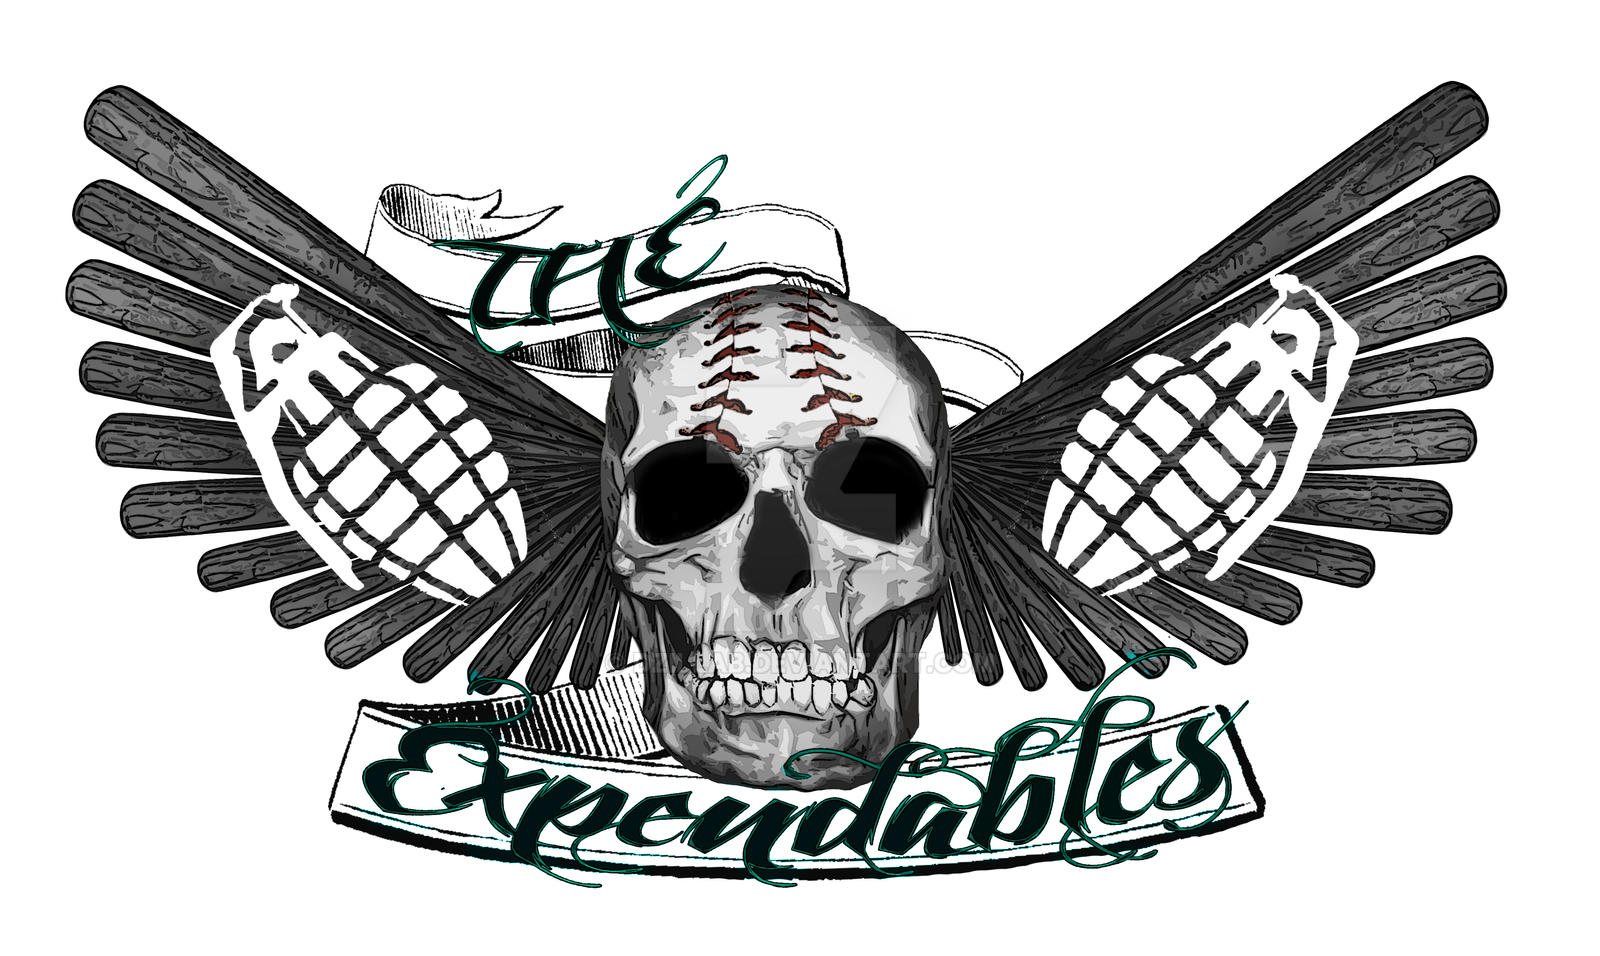 The Expendables Logo